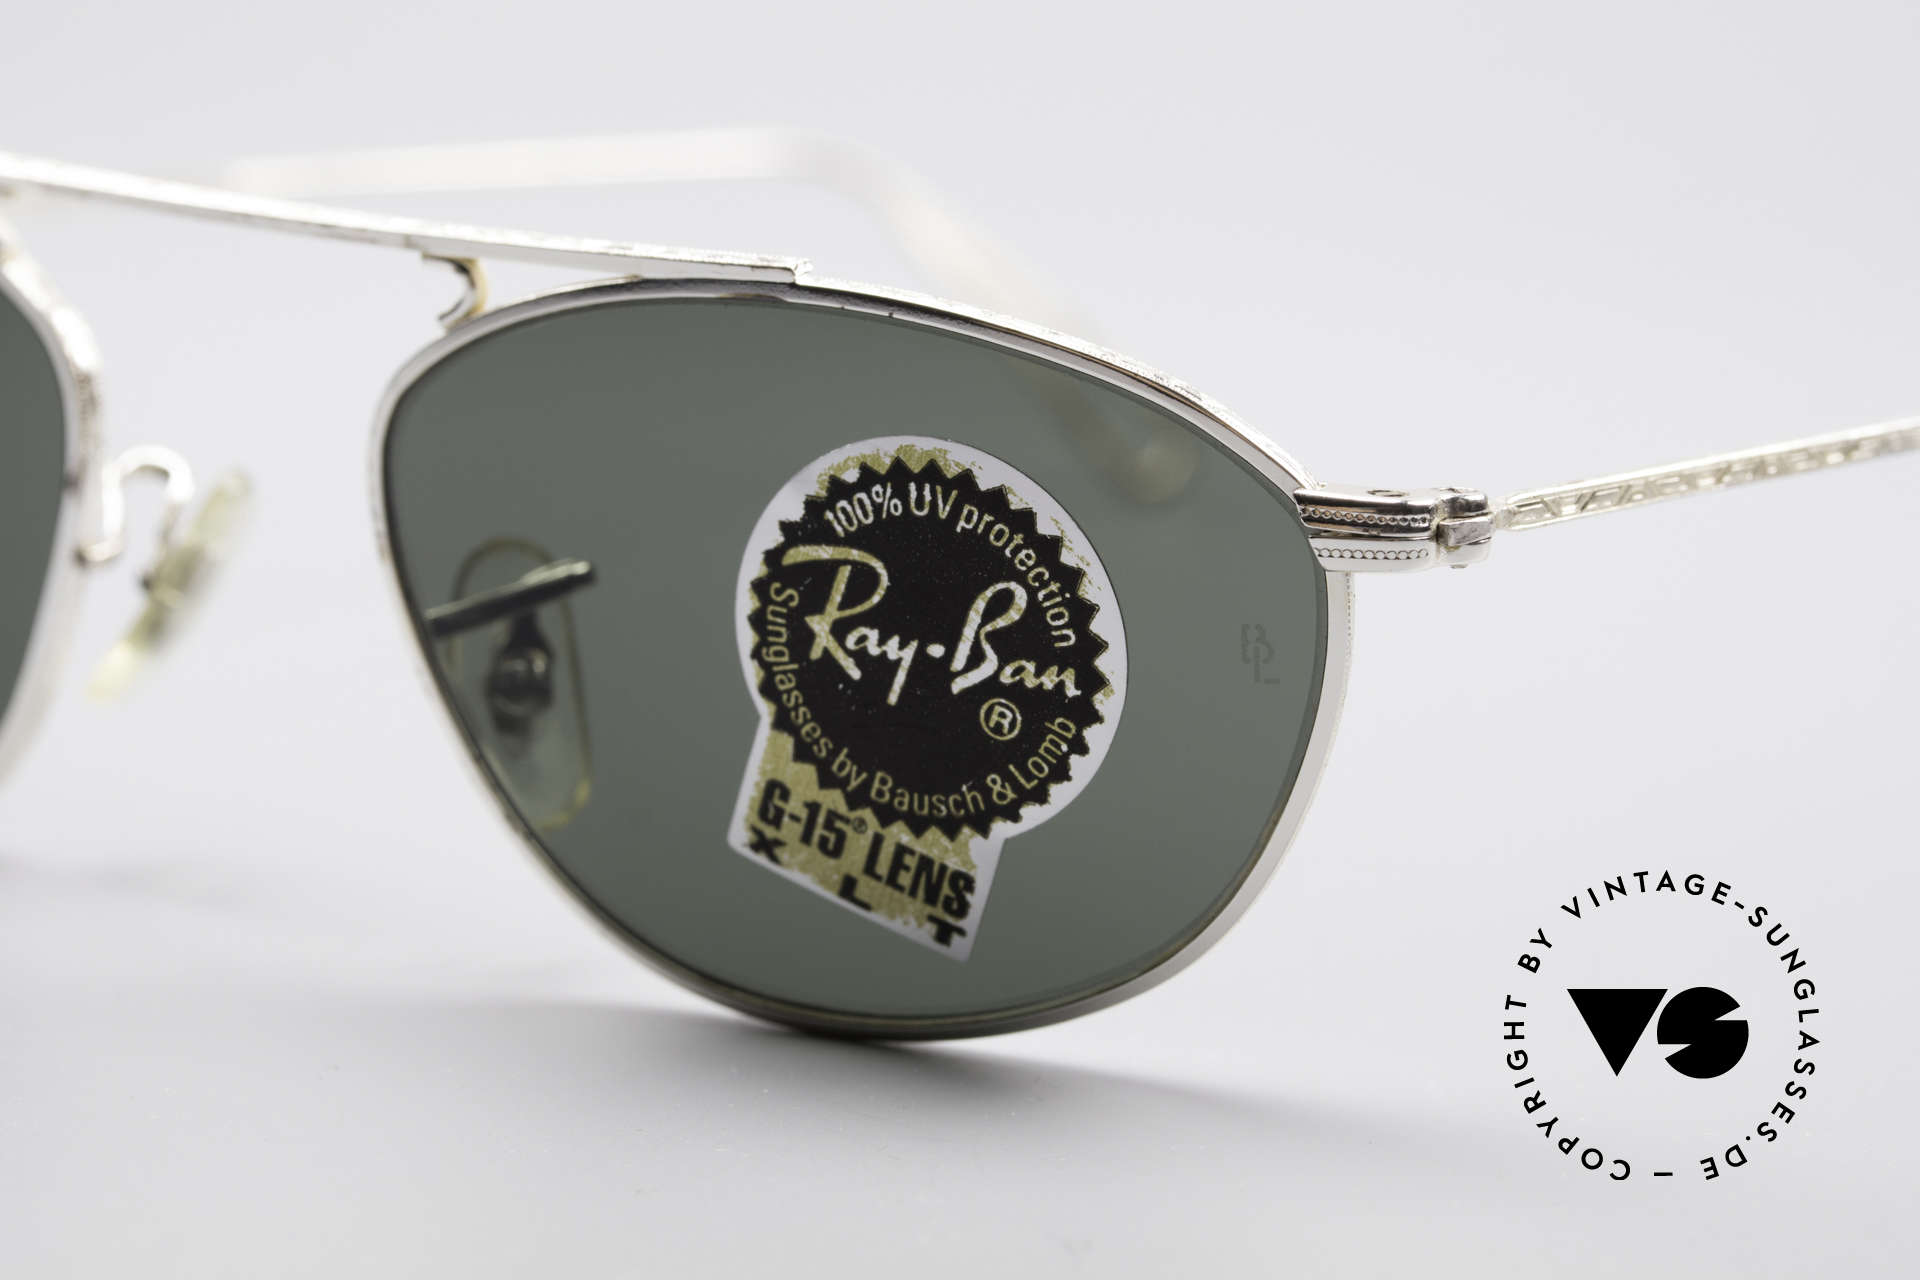 Ray Ban Modified Aviator Vintage B&L USA Frame, unworn rarity (incl. orig. case & packing by Ray-Ban), Made for Men and Women